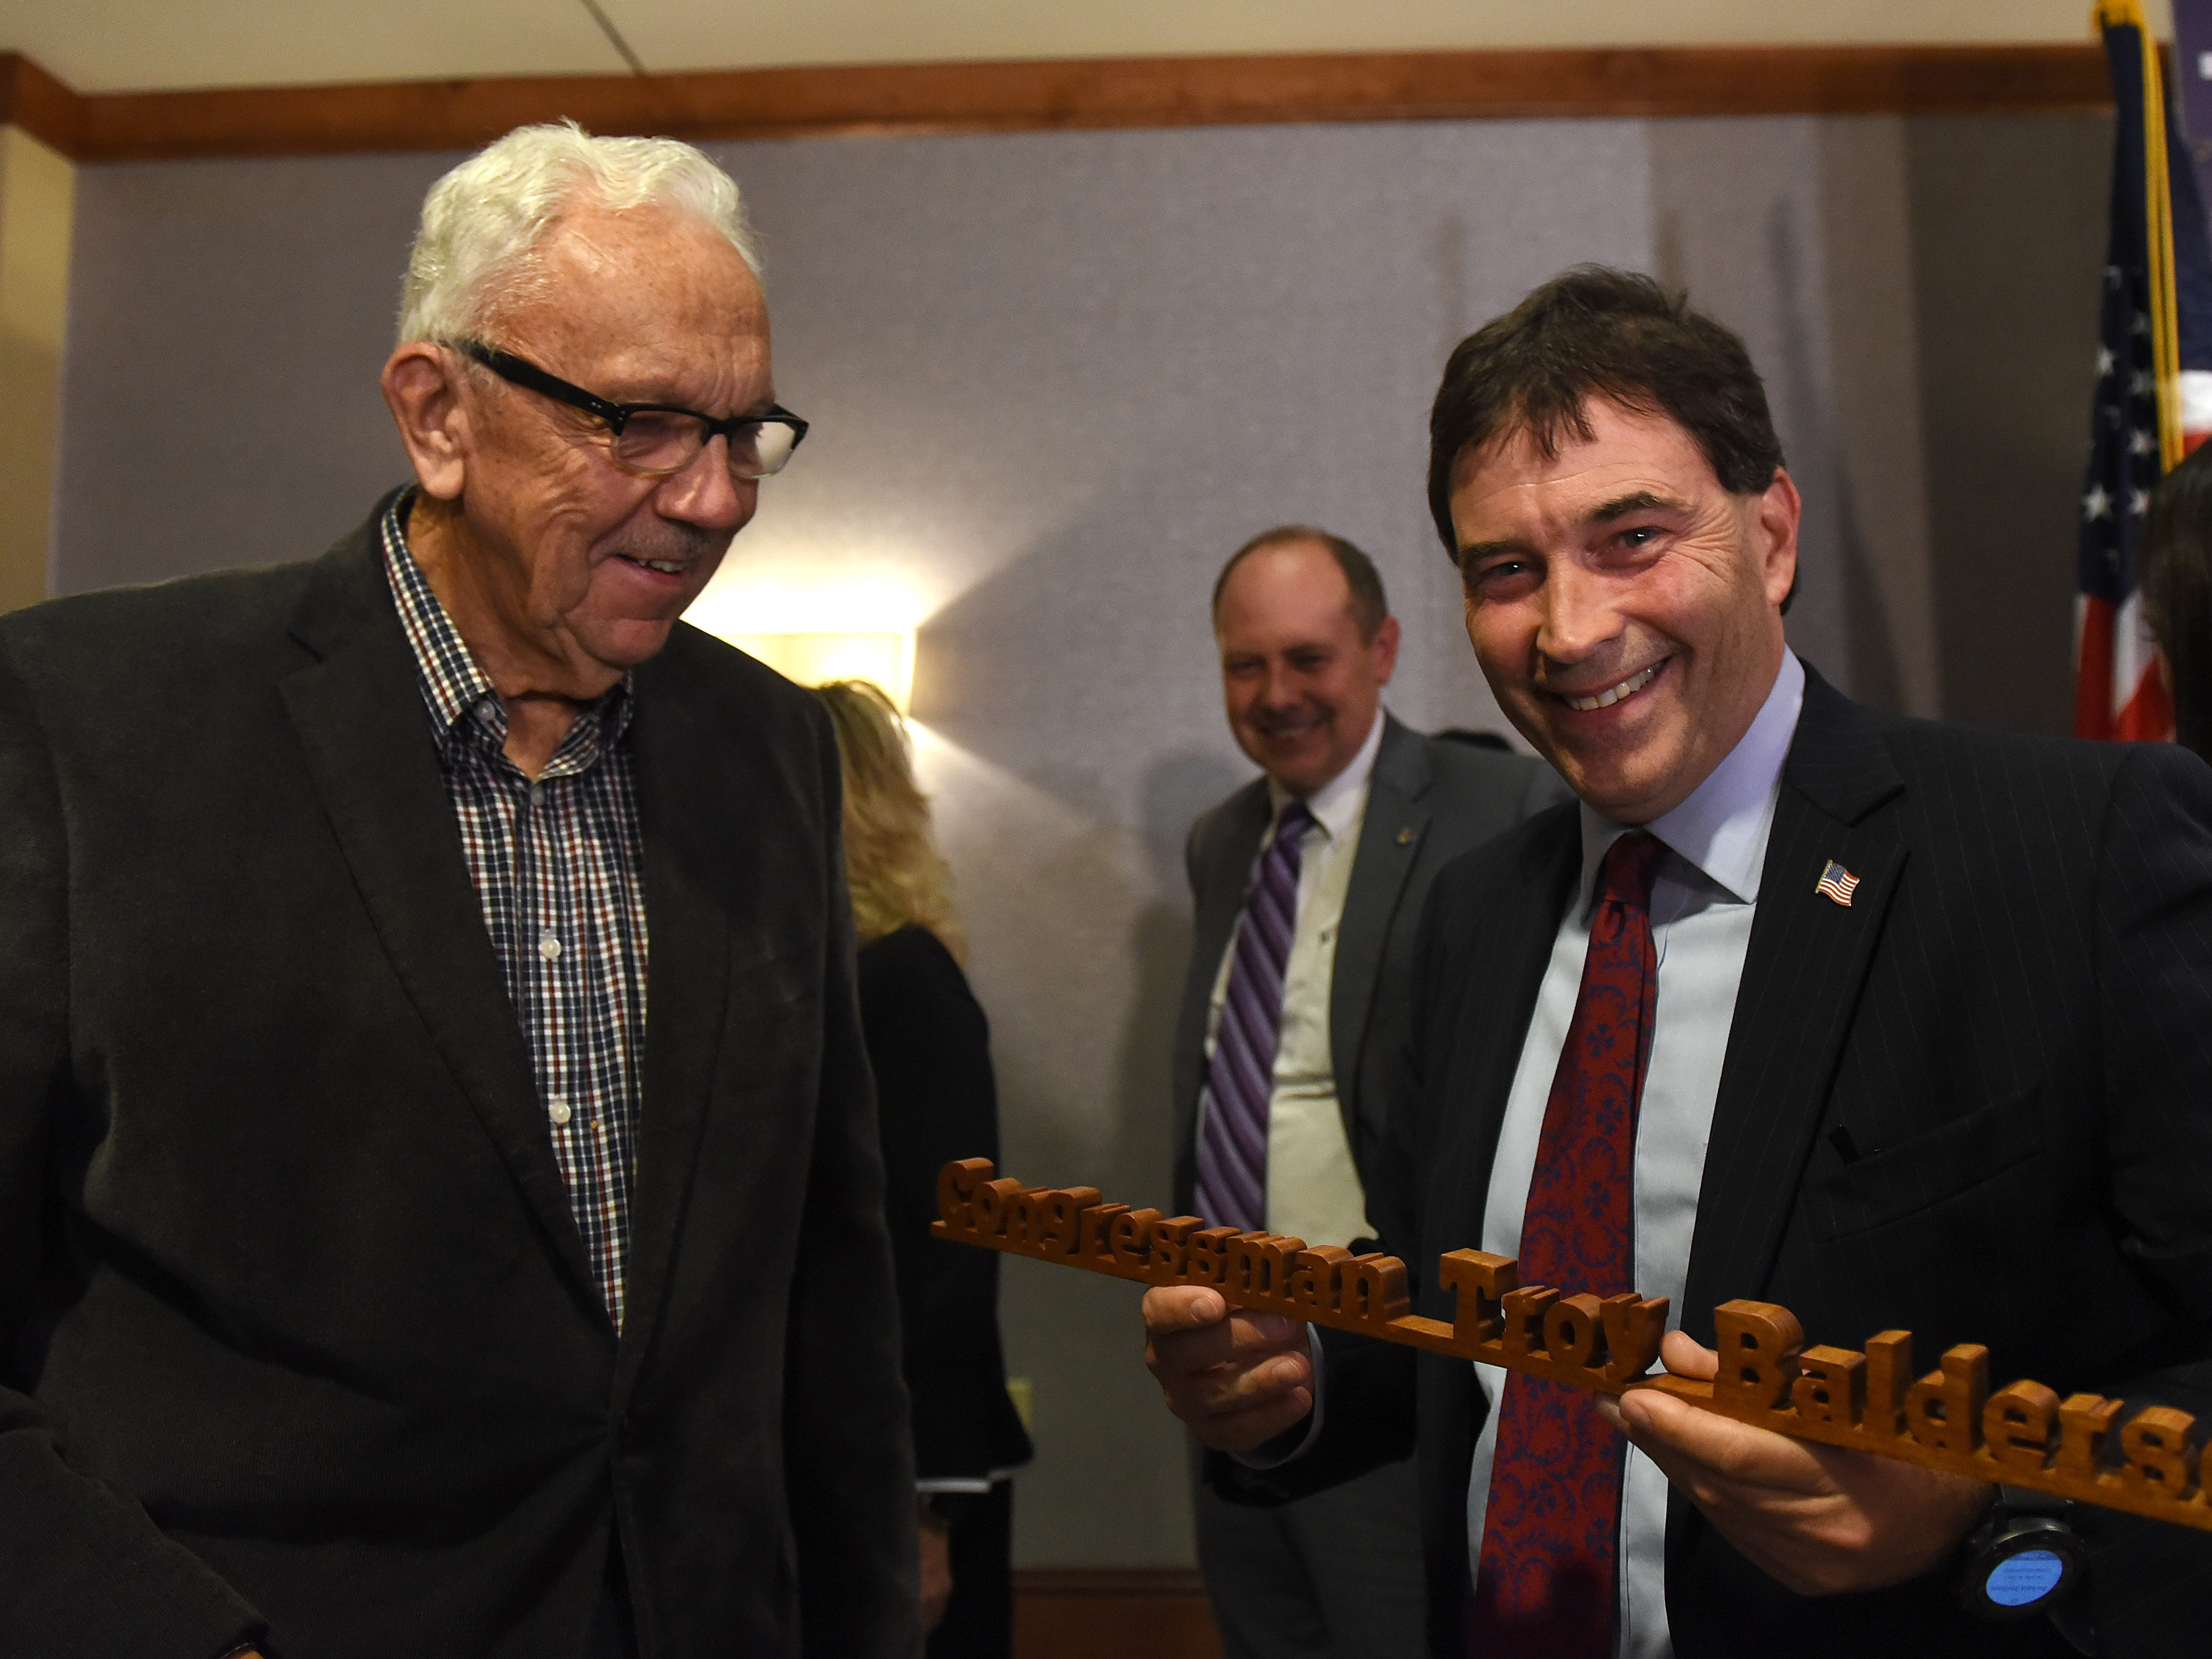 Dave Grube, of St. Albans, presents Congressman Troy Balderson with a wooden sign he made during an election night event at the DoubleTree in Newark. Grube had also made a similar sign for former Ohio 12 Congressman Pat Tiberi.